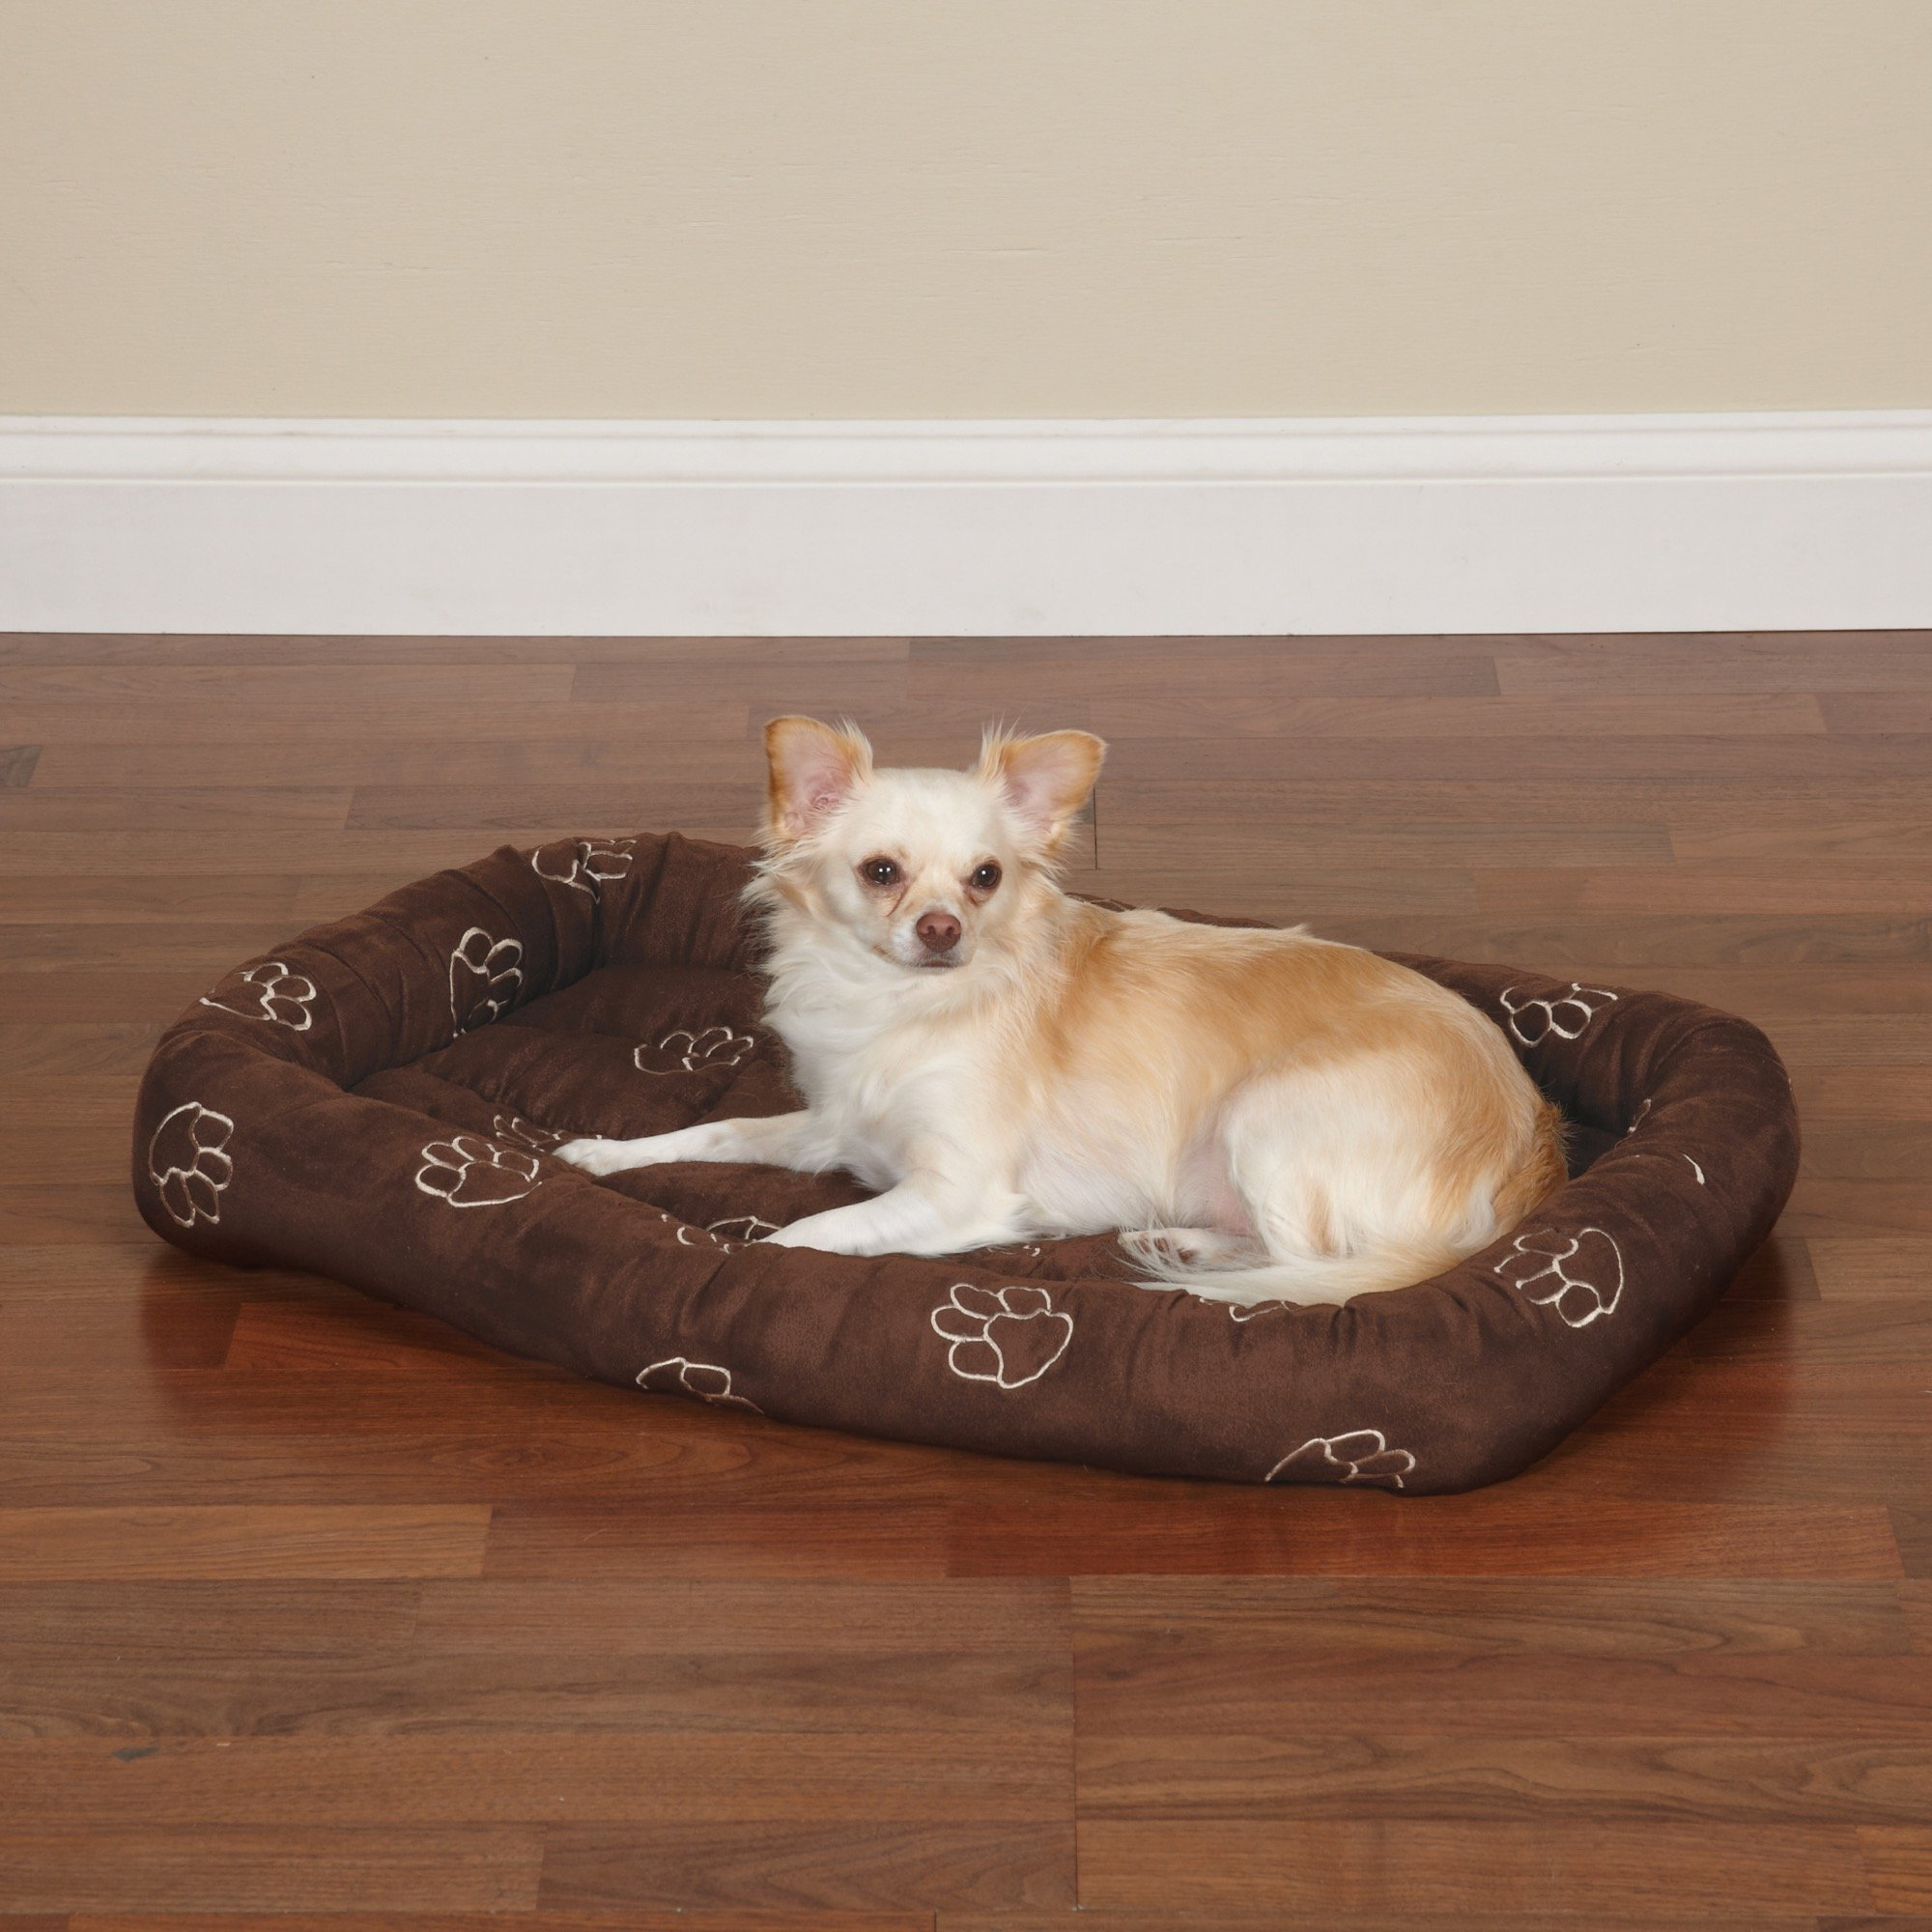 Slumber Pet Embroidered Pawprint Crate Beds - Soft and Extra-Durable Beds for Dogs and Cats - Medium/Large, 353/4'' L x 223/4'' W, Chocolate by Slumber Pet (Image #1)